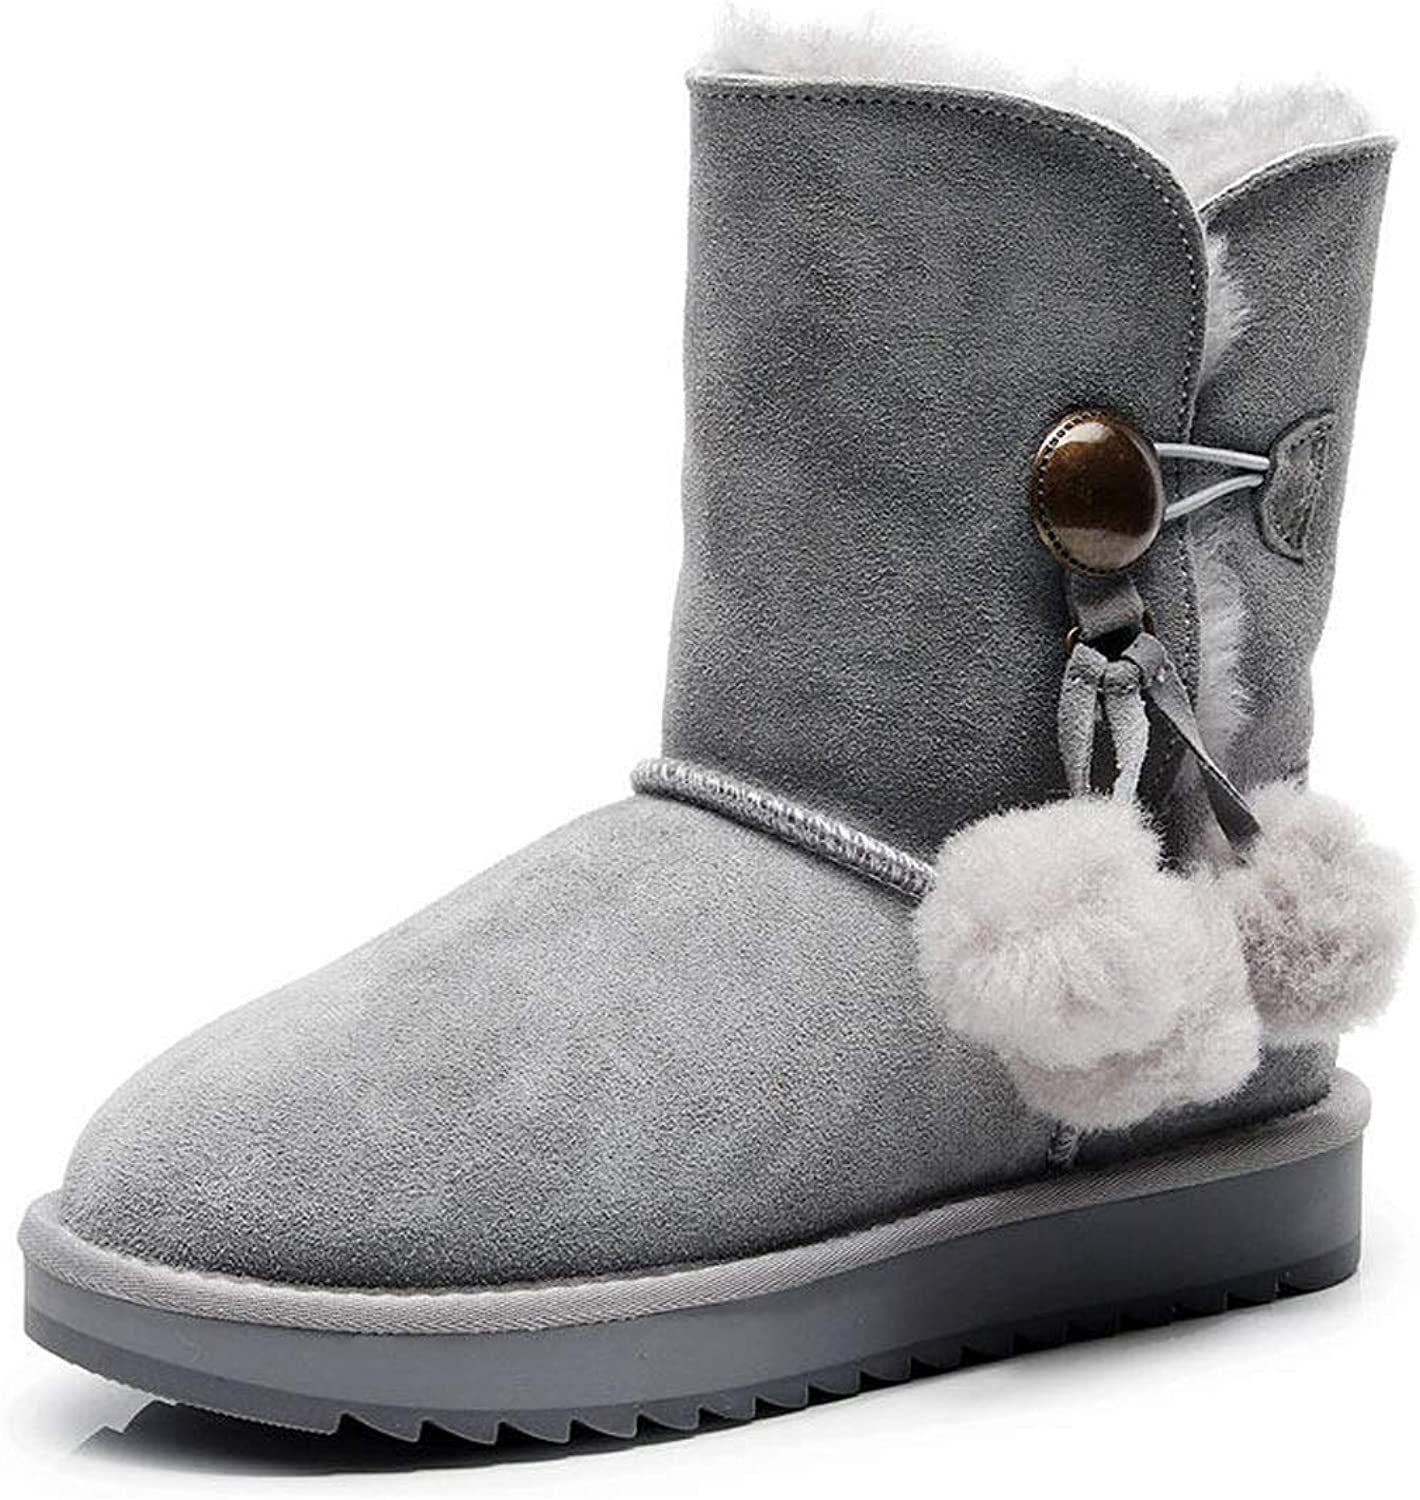 Women's Snow Boots 2018 with Flat Heel 3 Pom-pom Casual Ankle Boots Fashion Warm shoes for Fall & Winter